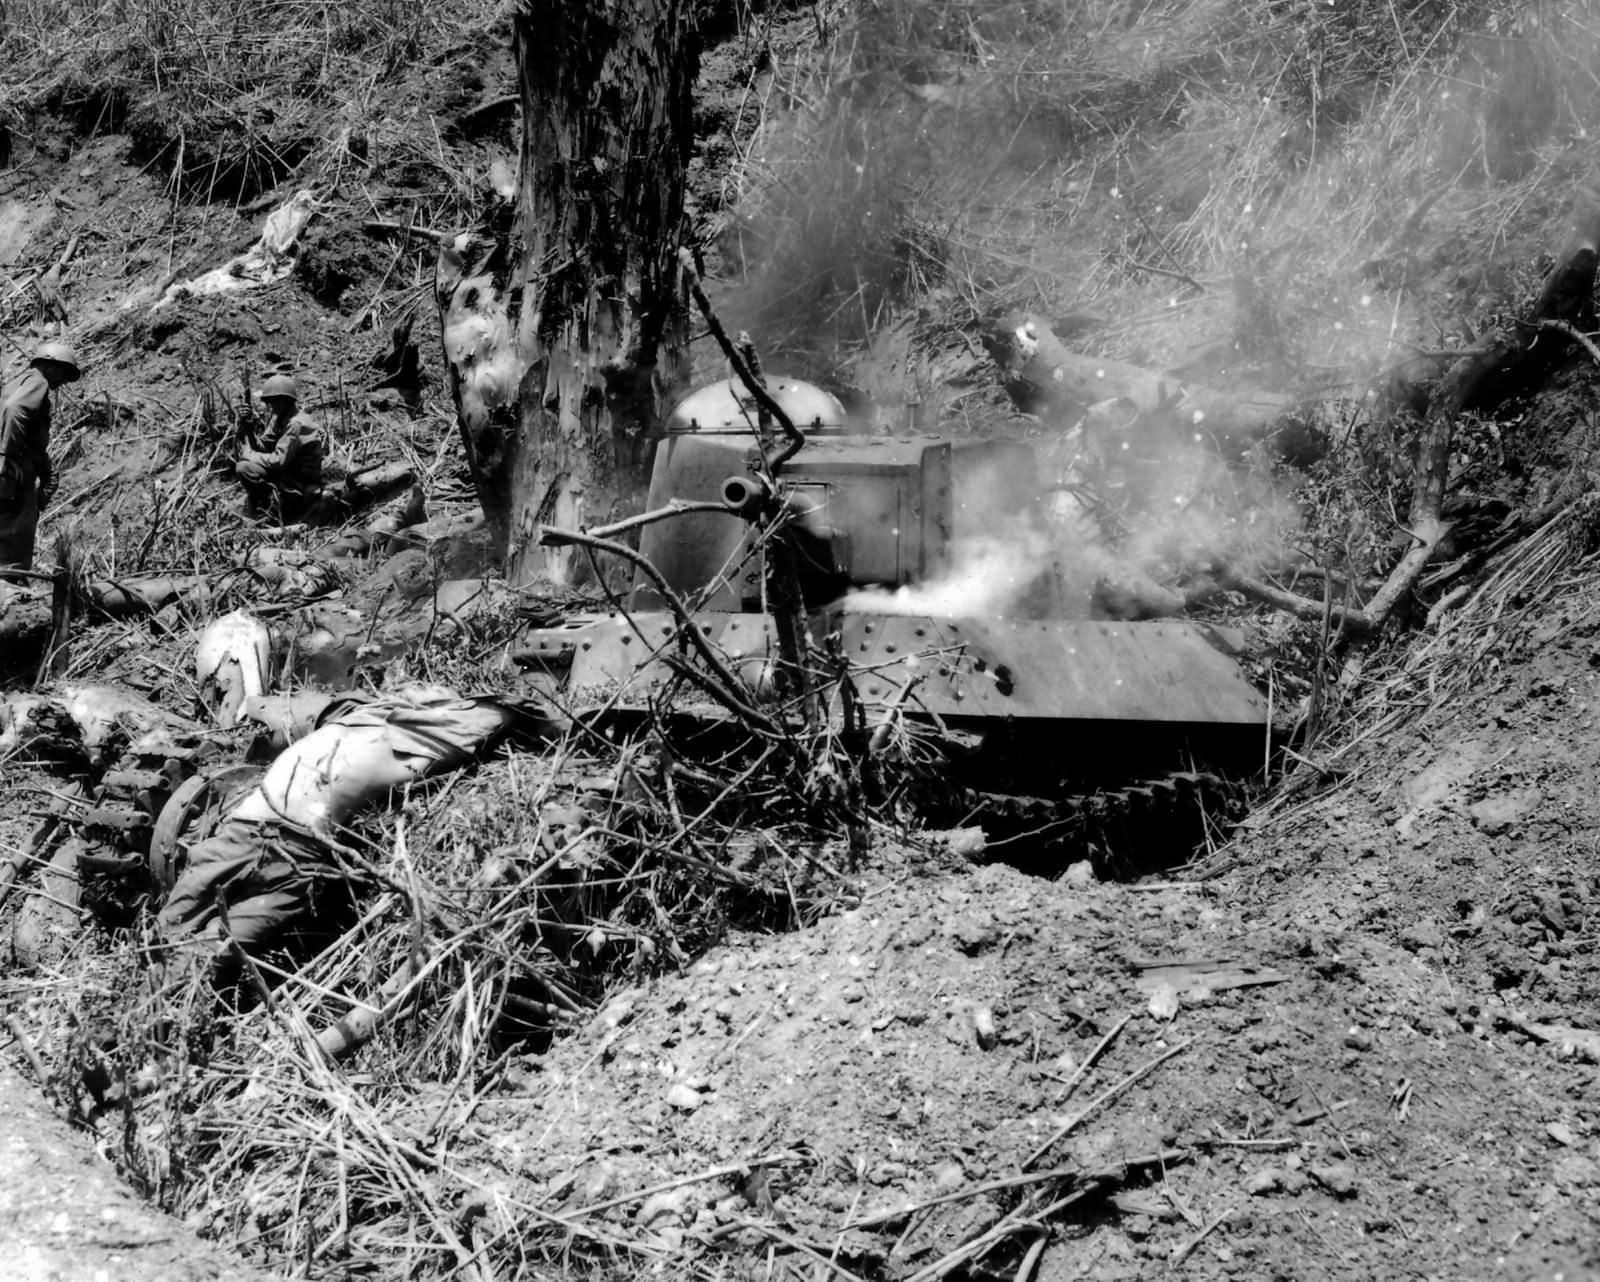 Japanese 2nd Tank Division Type 95 Ha Go tank destroyed by 37th ID Bone Luzon 1945